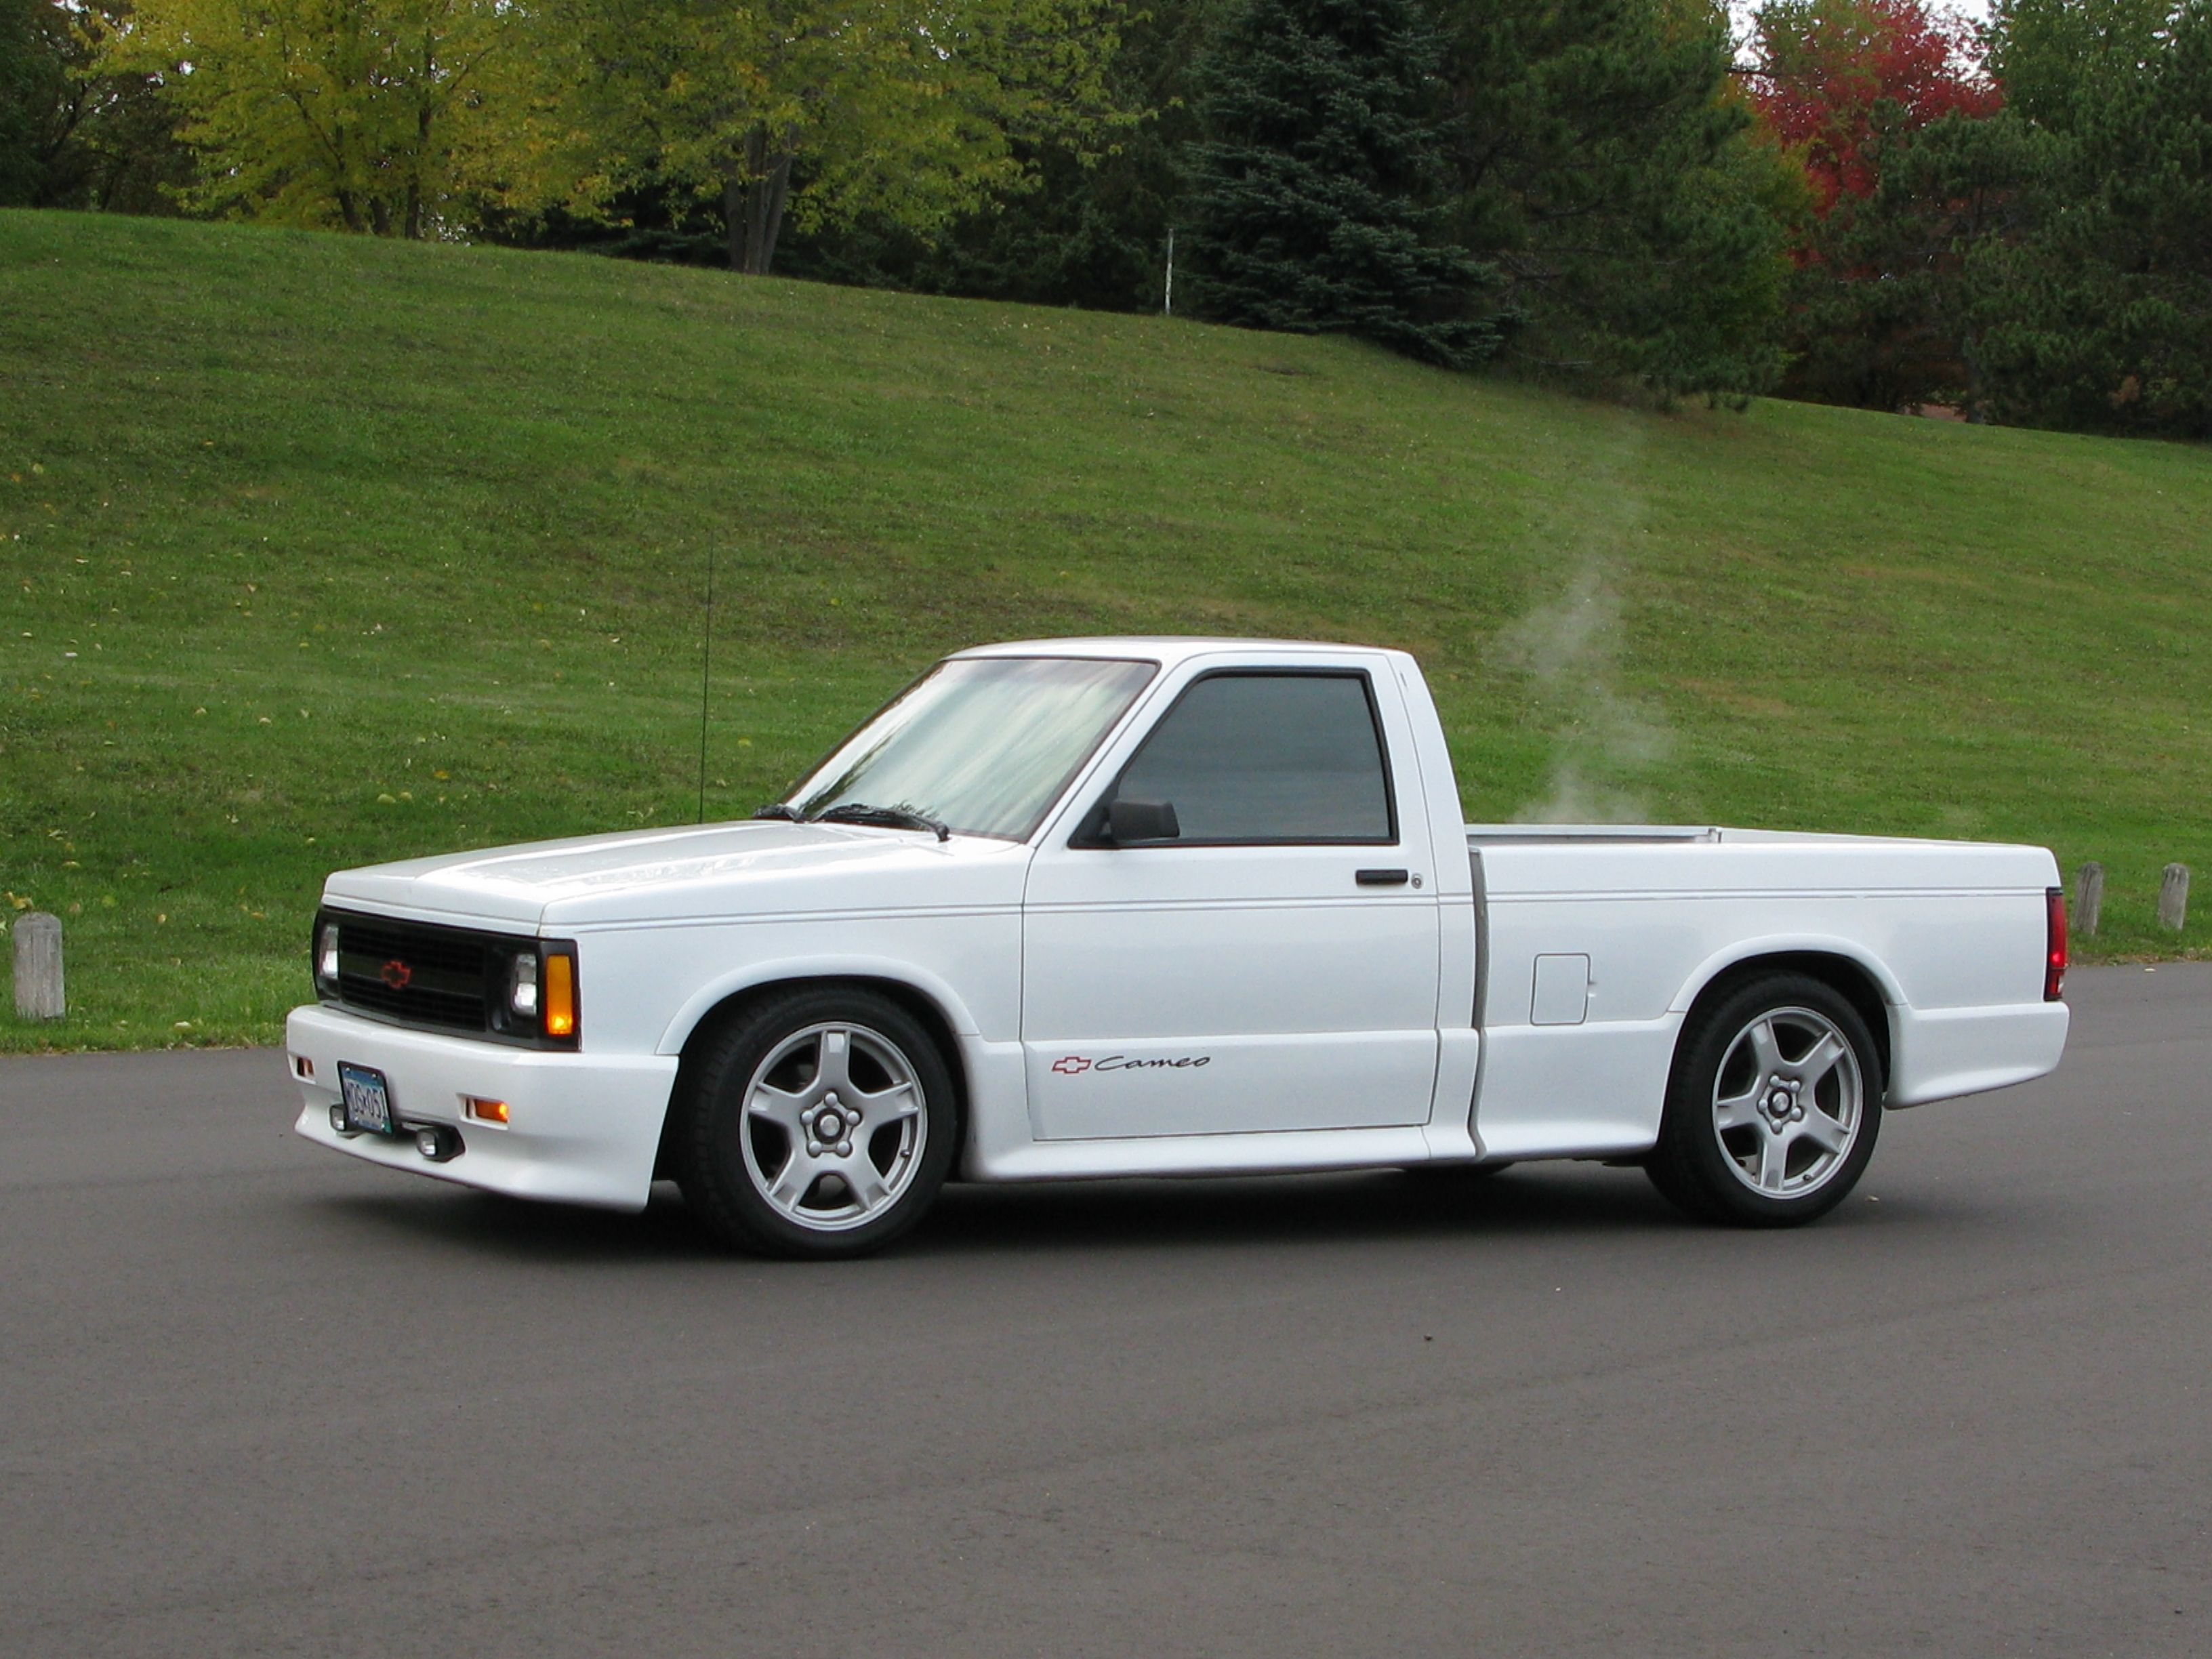 1991 s10 cameo lowered with c5 wheels quick ratio steering box and rear